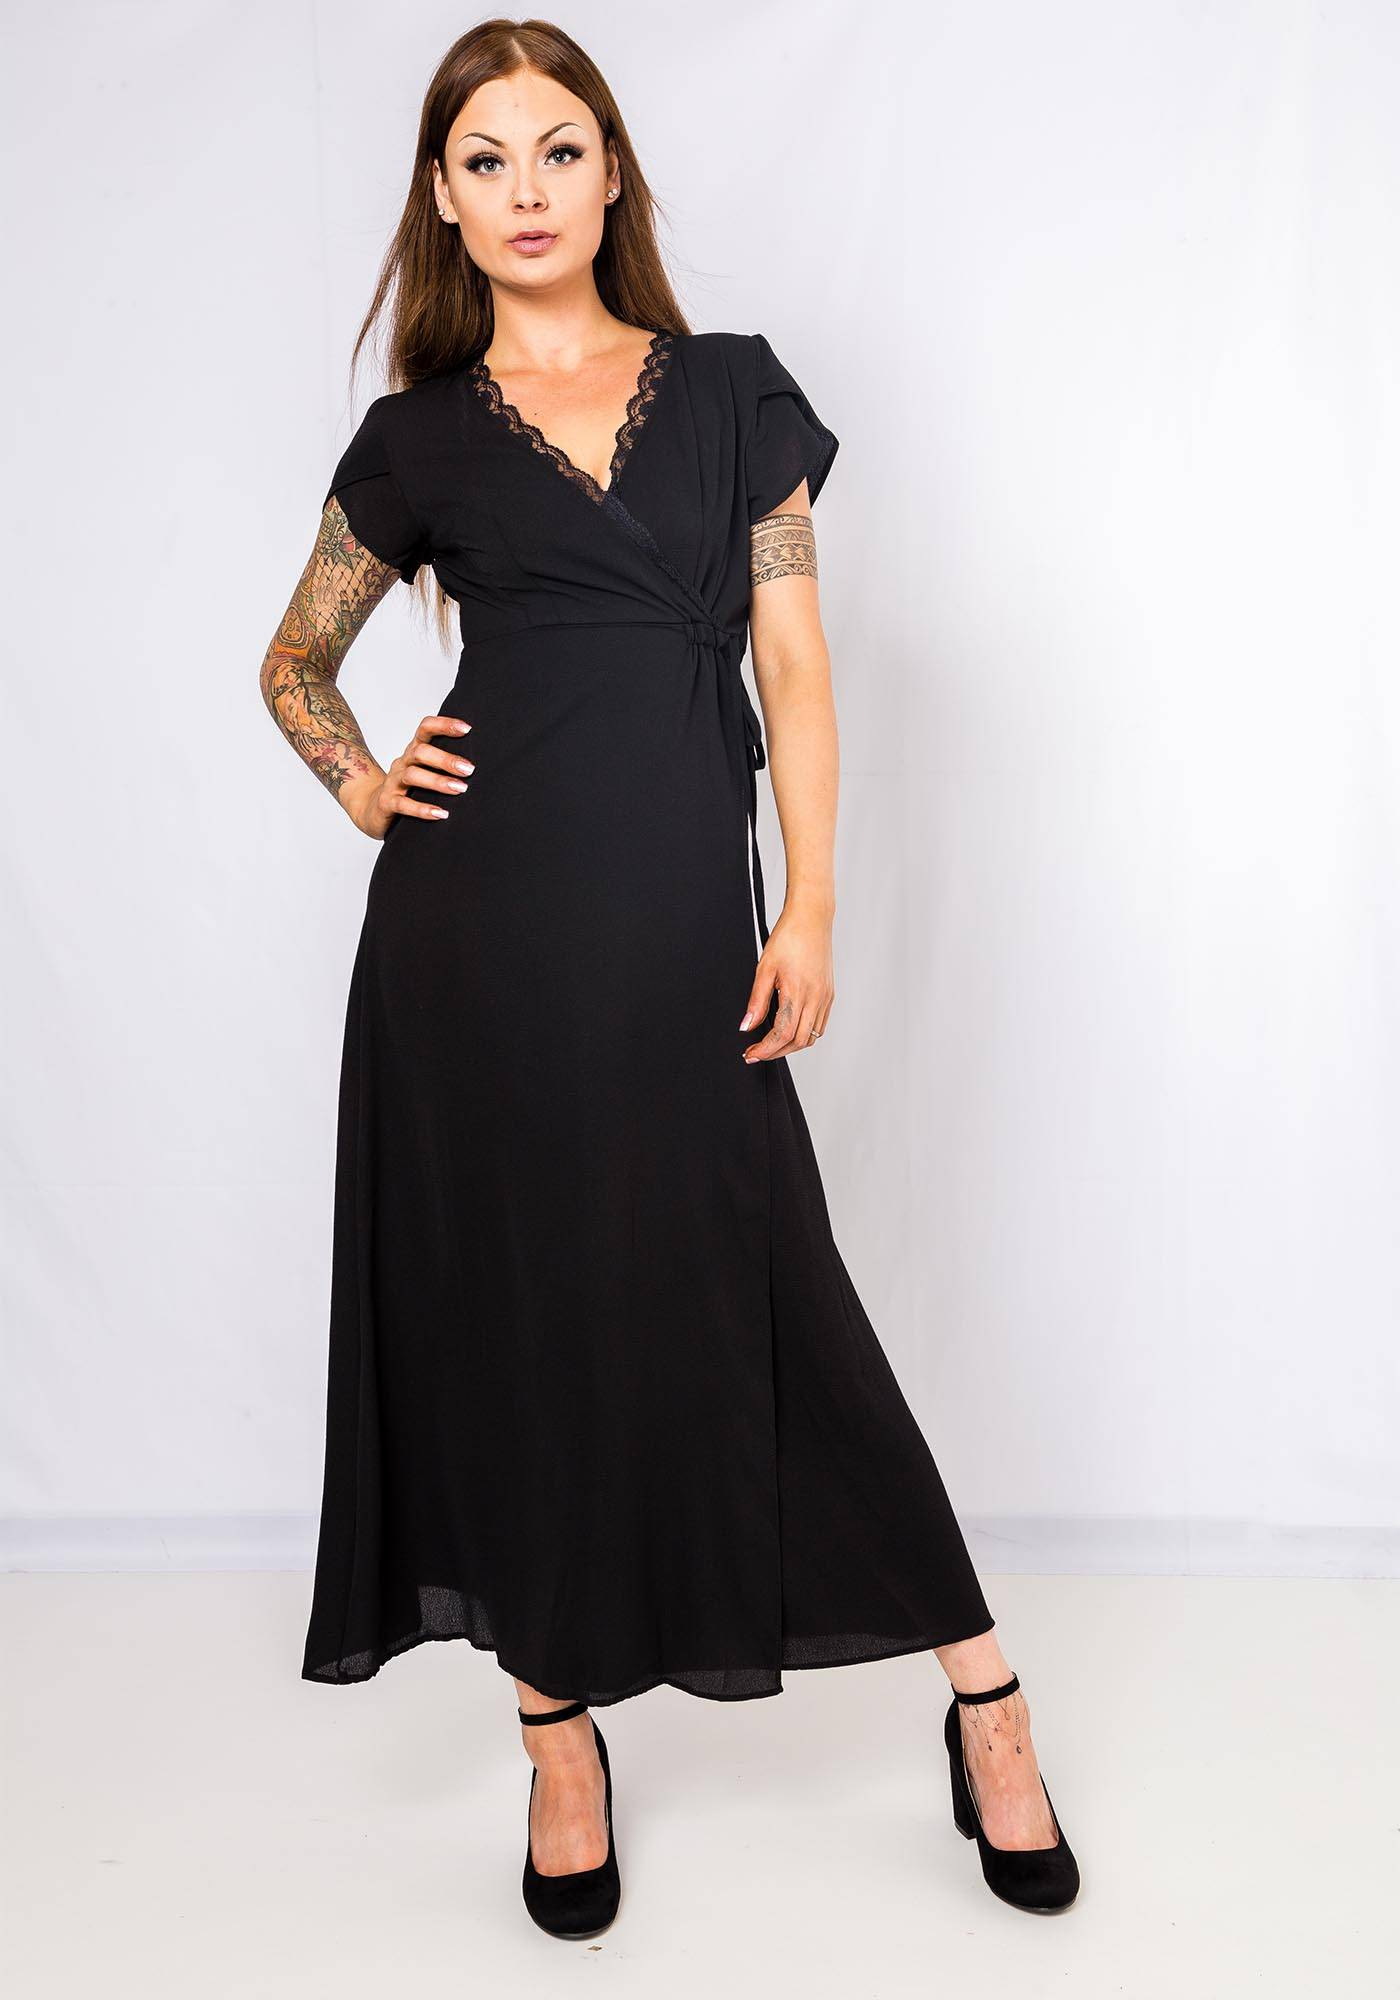 Image of Jubylee Maxi Dress Lace Detail In Black